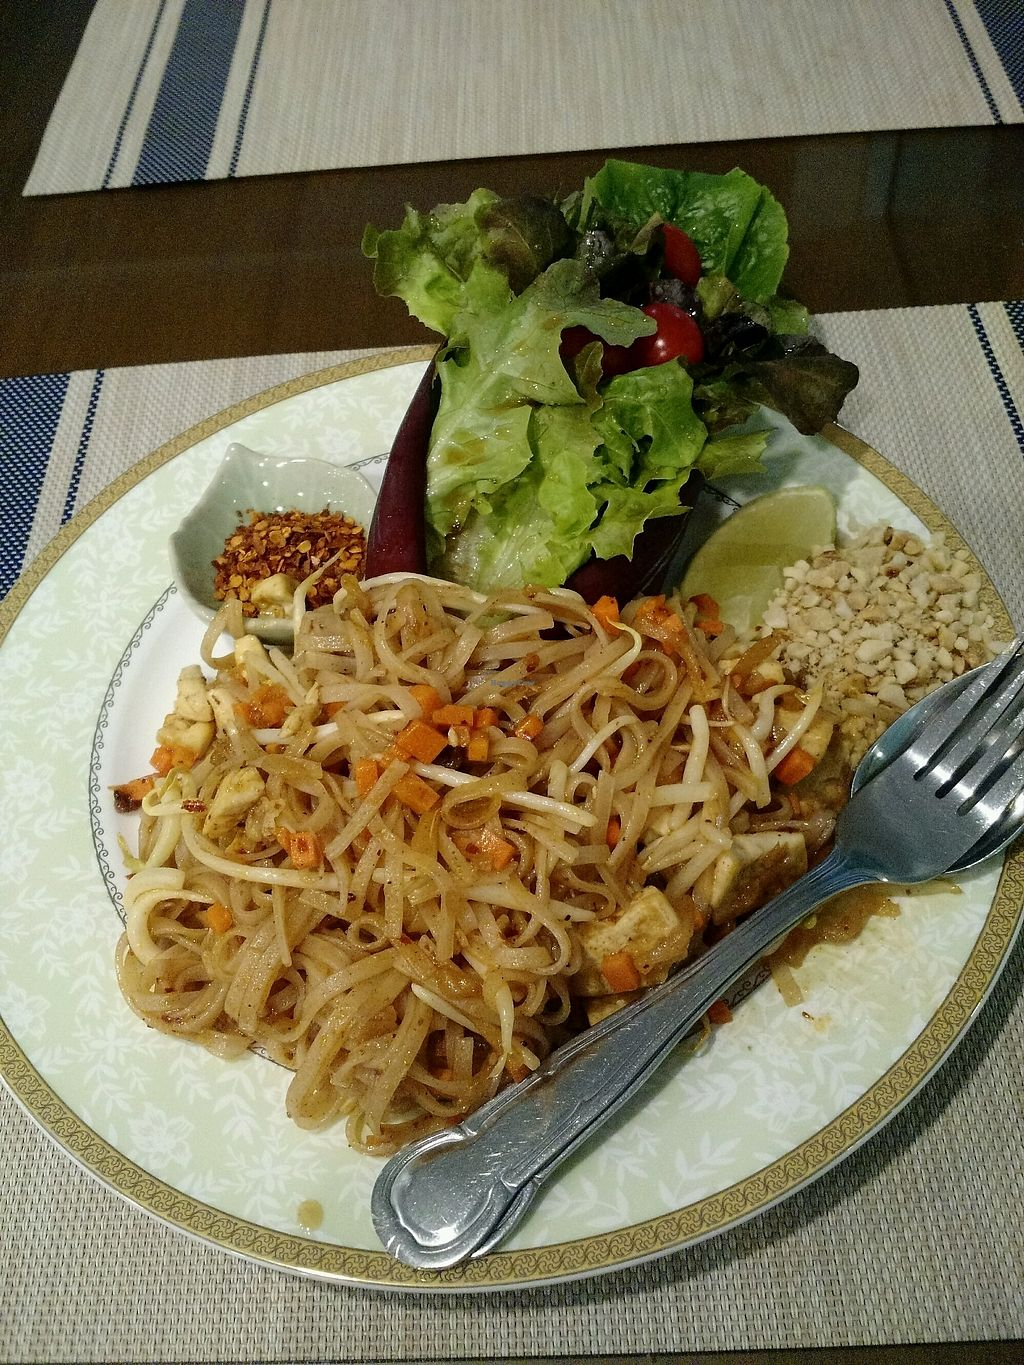 "Photo of Love Forest  by <a href=""/members/profile/TiffEats"">TiffEats</a> <br/>Pad Thai - love that it came with little salad <br/> December 4, 2017  - <a href='/contact/abuse/image/91188/332247'>Report</a>"